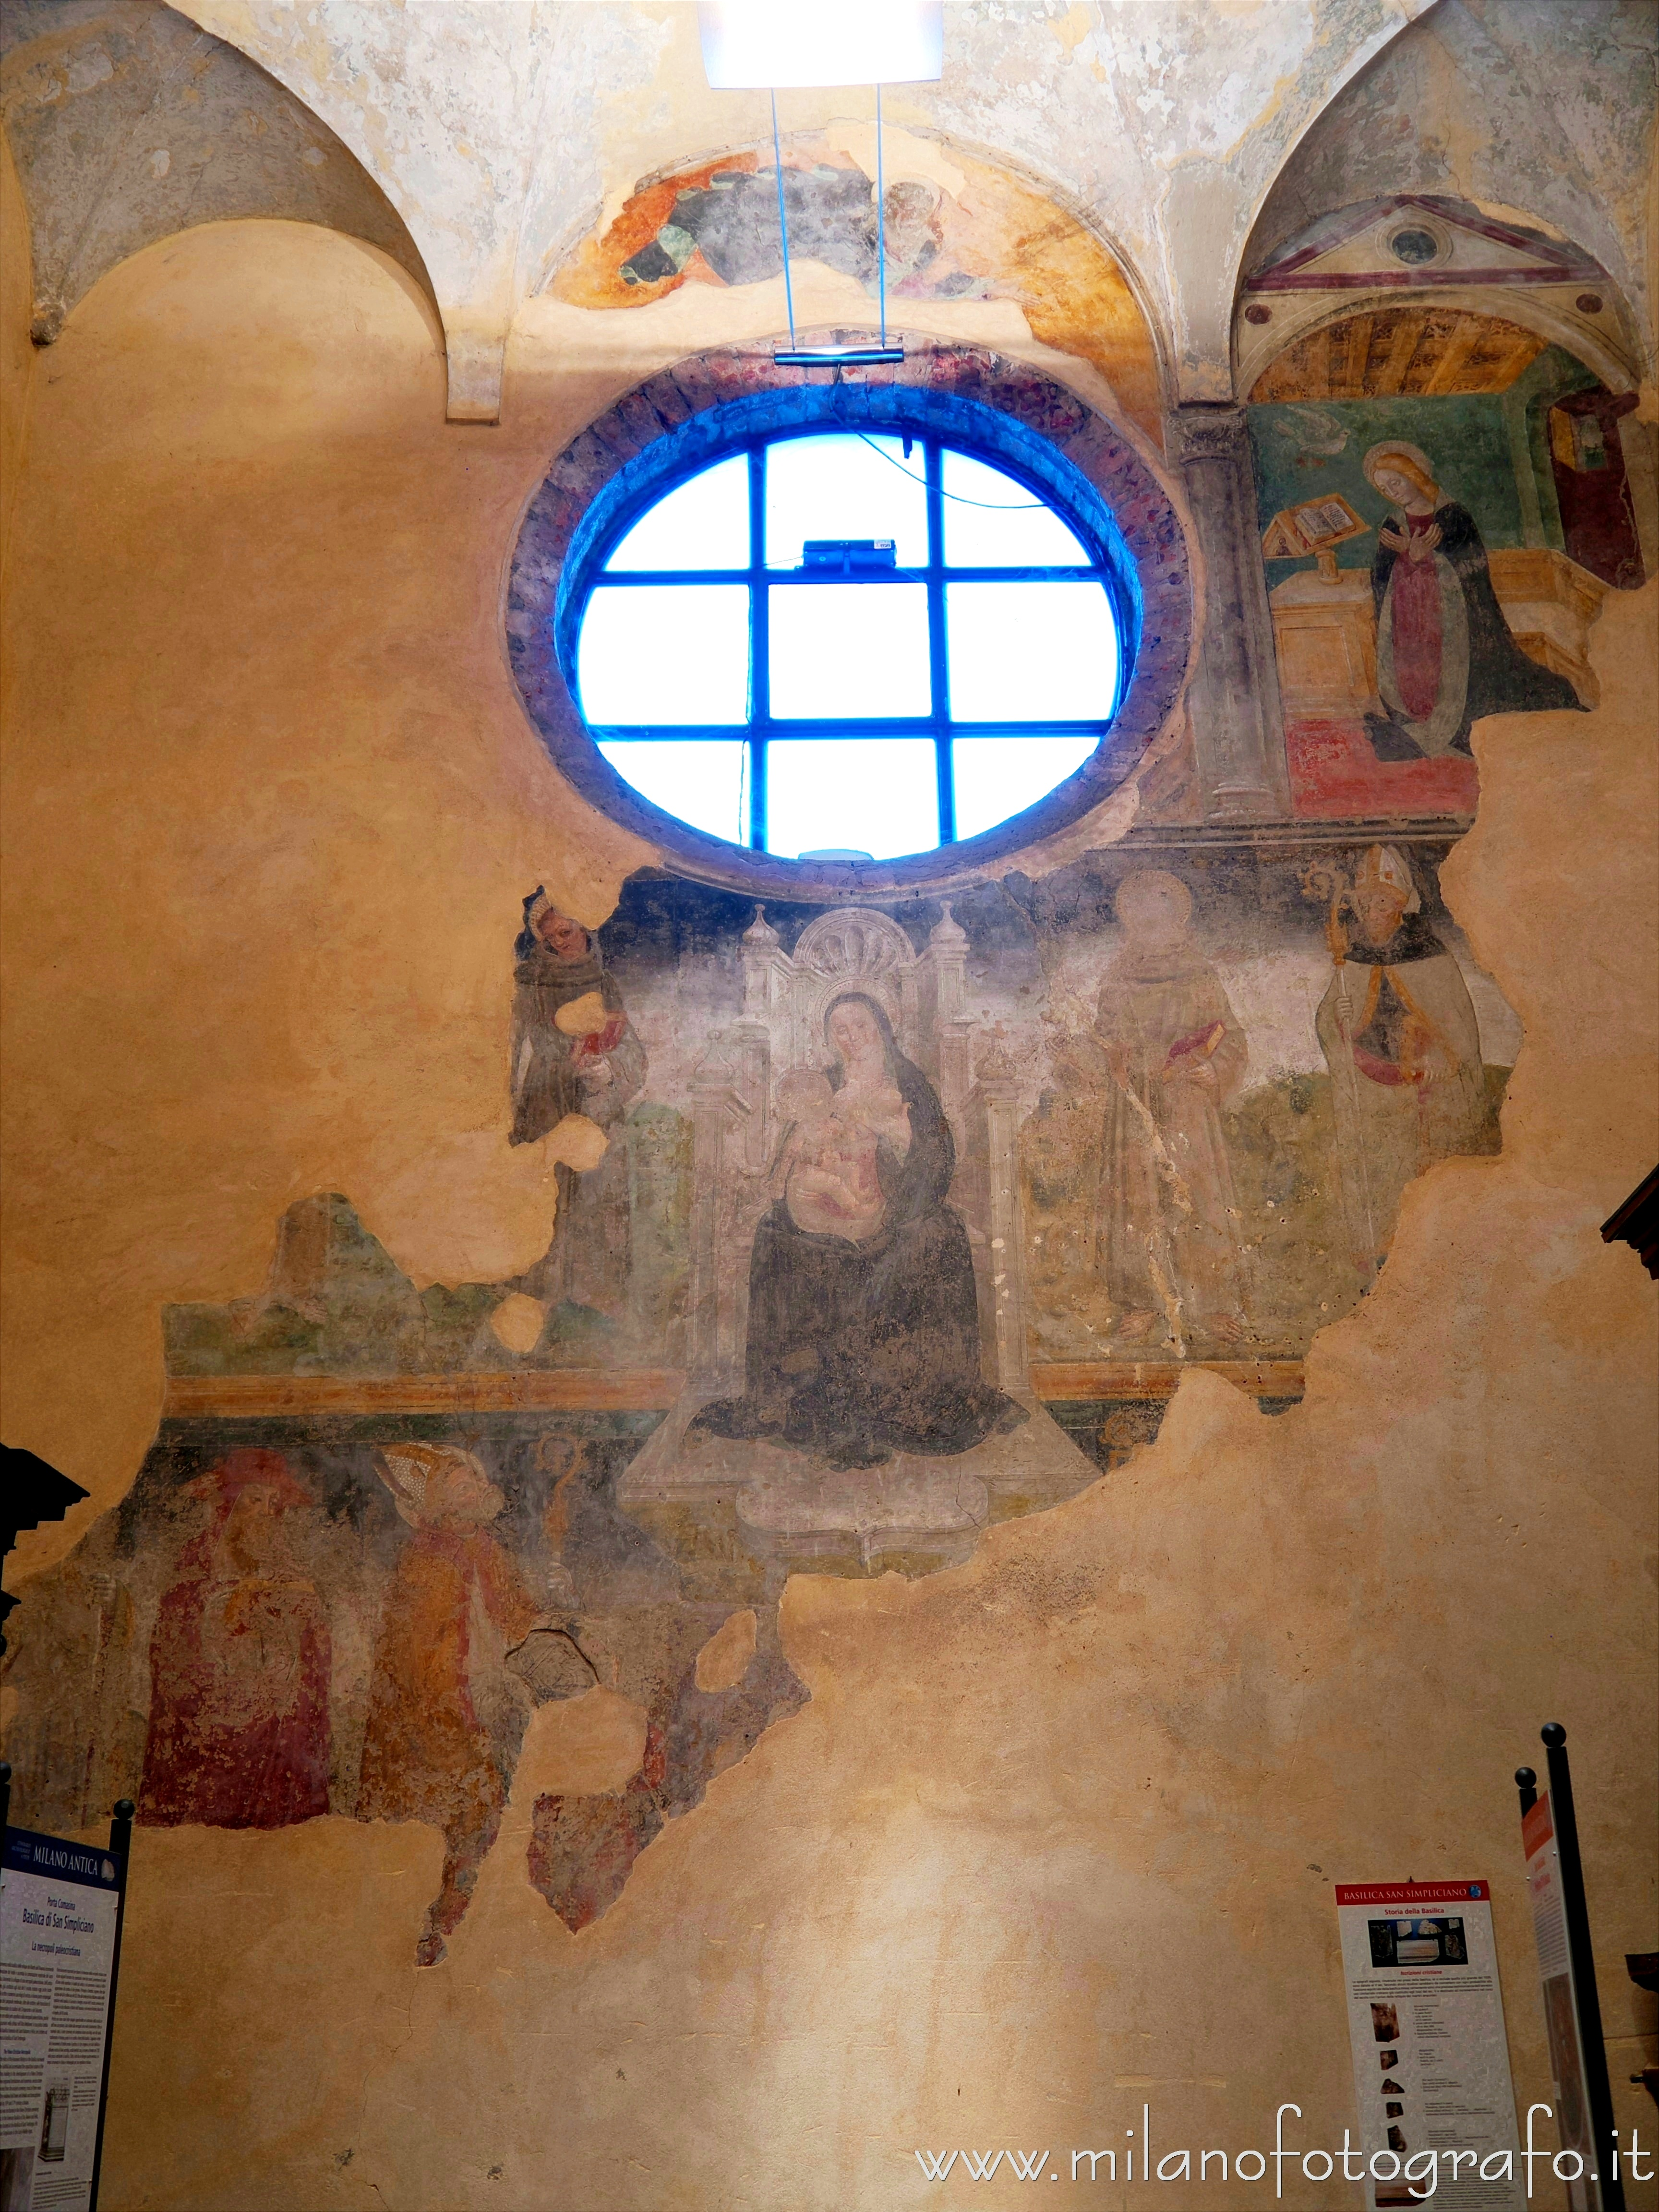 Milan (Italy): Late medieval frescoes in the Basilica of San Simpliciano - Milan (Italy)